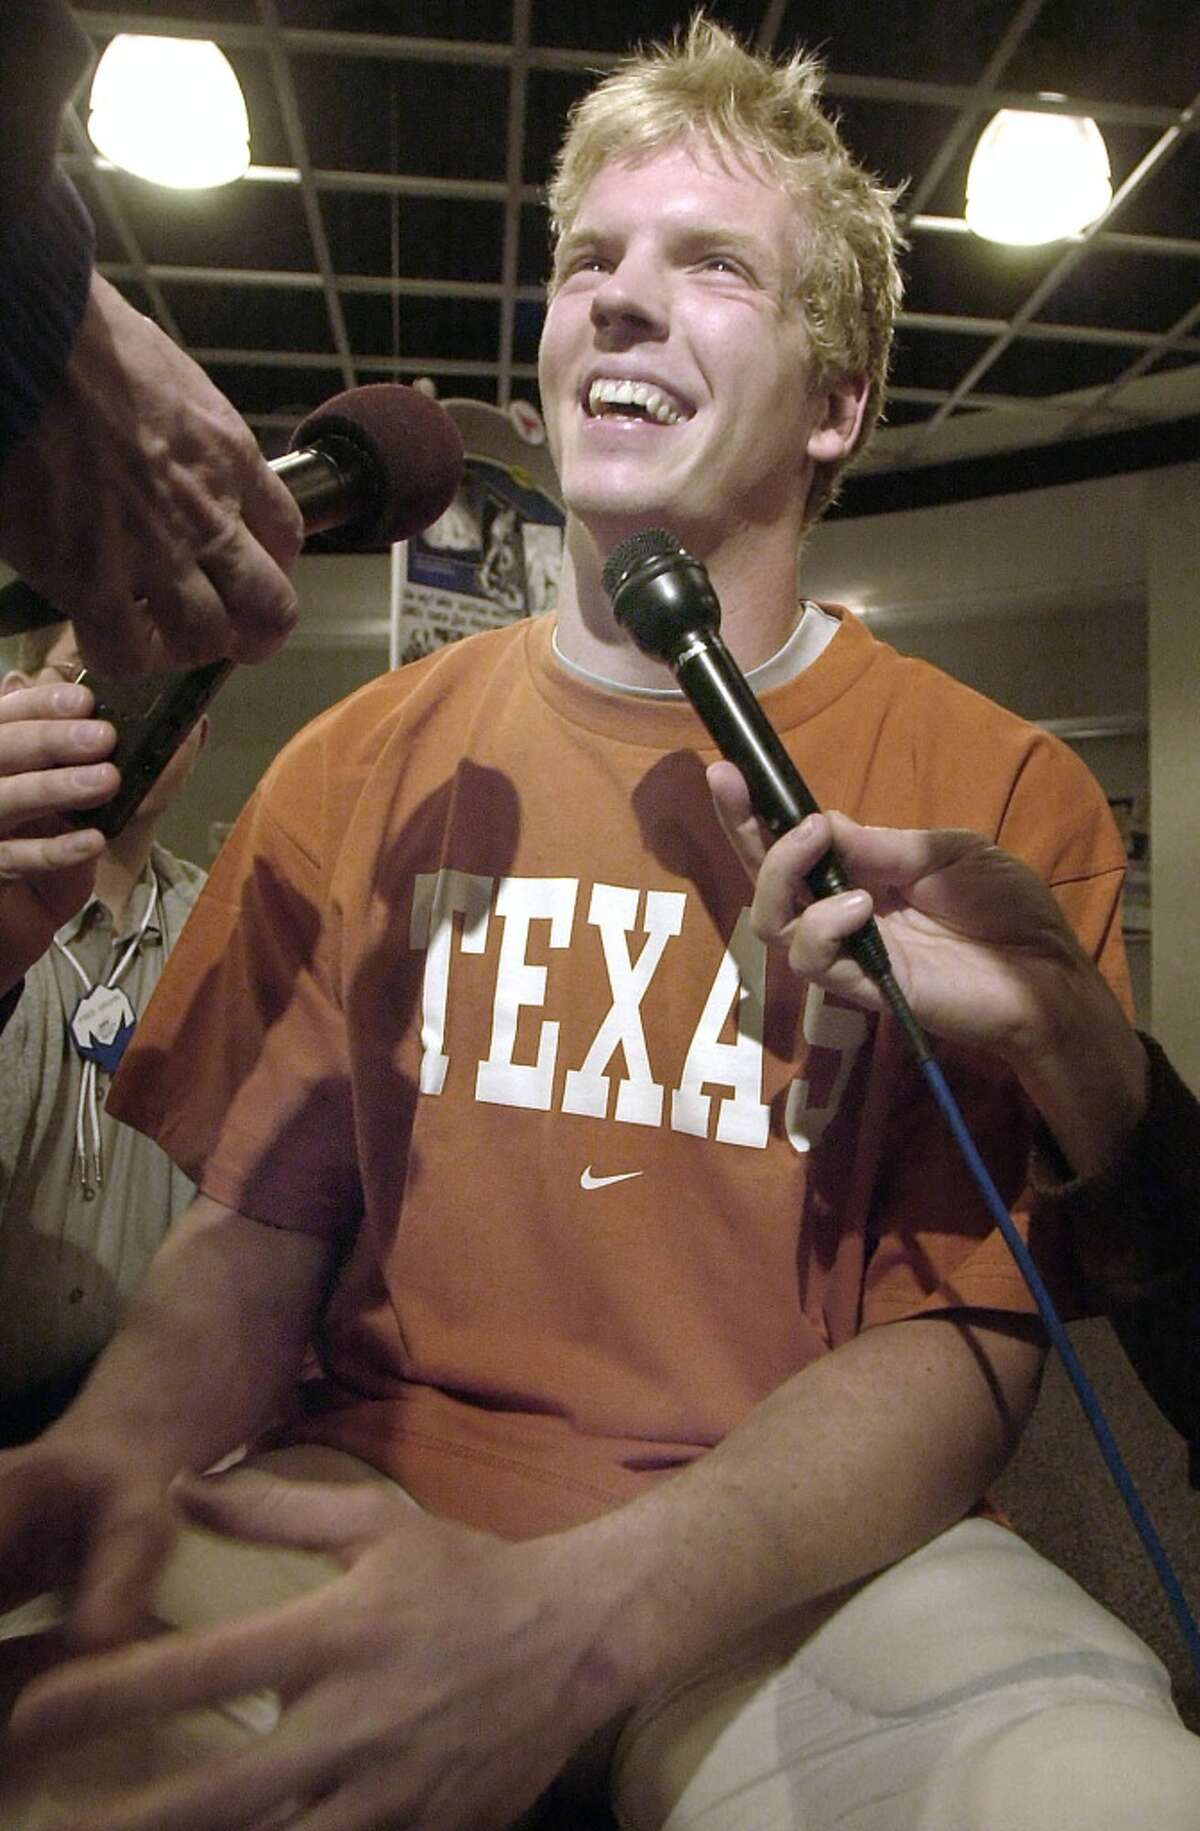 Texas quarterback Chris Simms smiles while speaking to reporters during Cotton Bowl media day in Dallas, Thursday, Dec. 26, 2002. Texas faces LSU in the Jan. 1 bowl game. (AP Photo/LM Otero) HOUCHRON CAPTION (08/26/2003-2-STAR)(08/26/2003): After a successful but very scrutinized career as Texas' quarterback, Chris Simms is enjoying a low key transition to the NFL with the Tampa Bay Bucs.